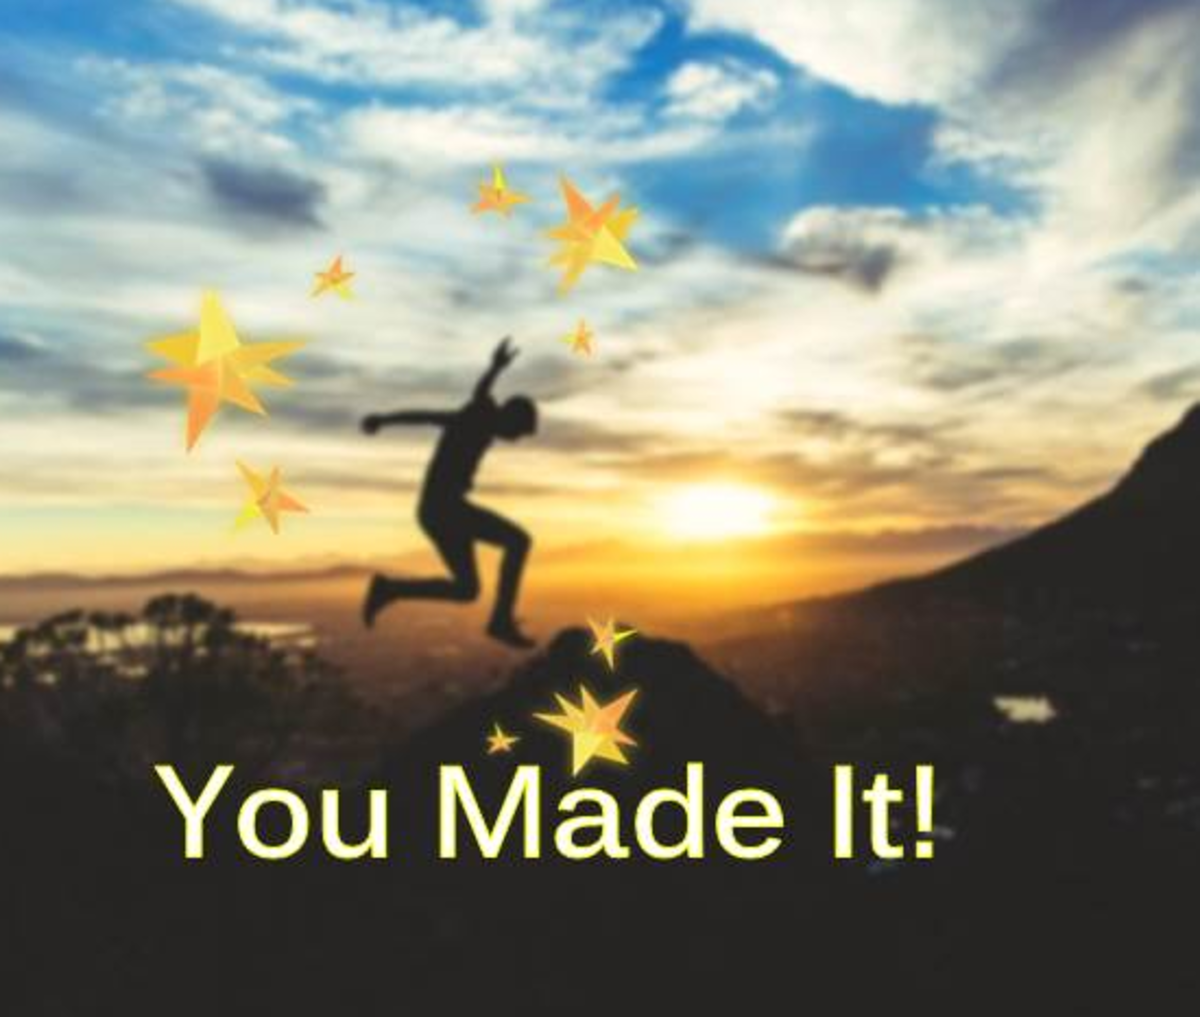 Yes You Made It